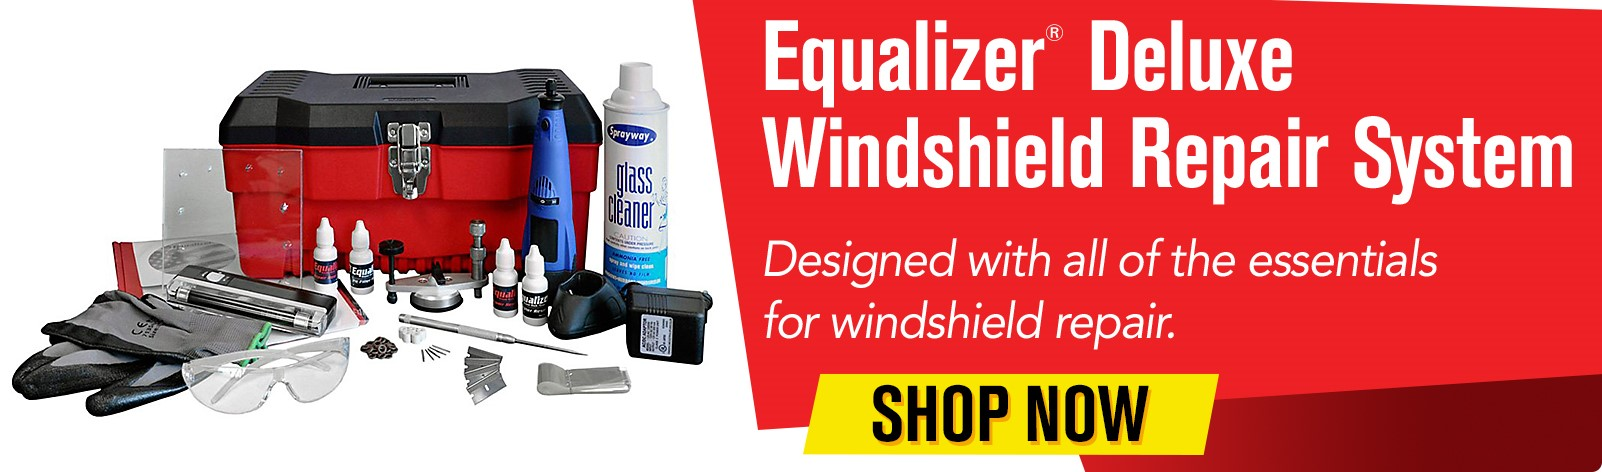 Equalizer Windshield Repair System - Designed with all of the essentials for windshield repair.